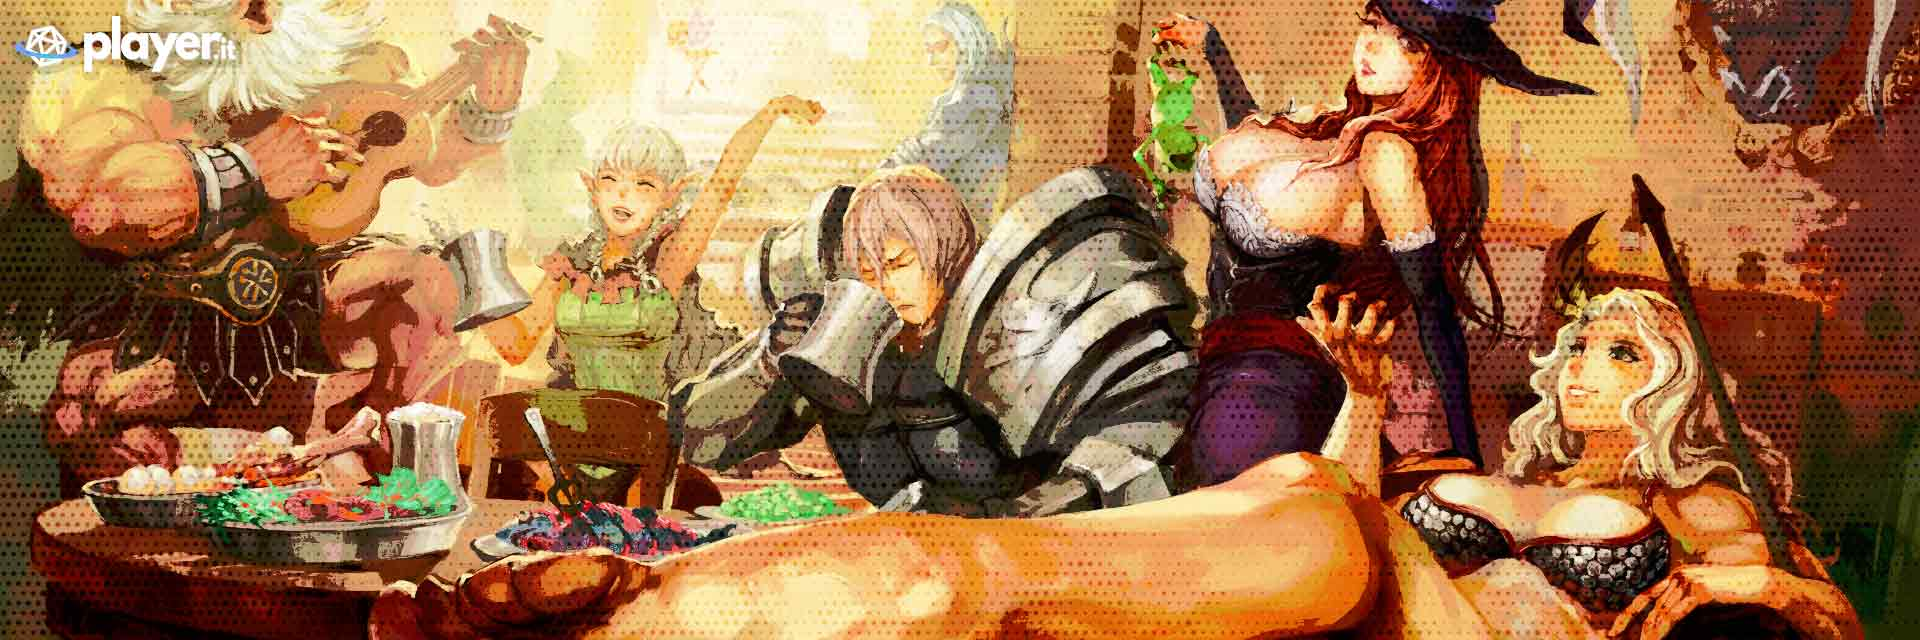 Dragon's Crown wallpaper in hd